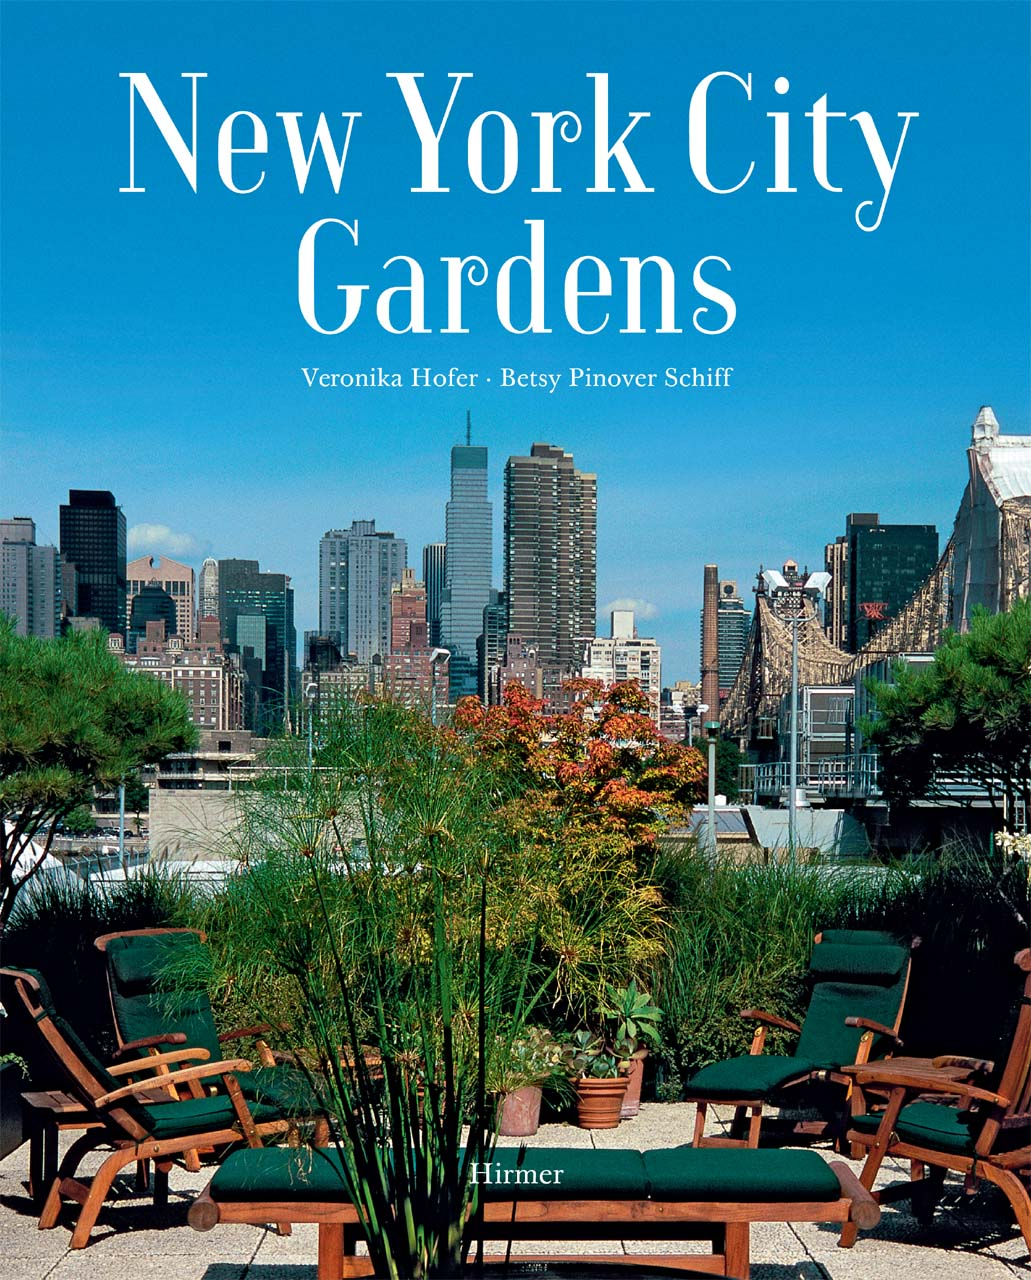 New York City Gardens. AddThis Sharing Buttons